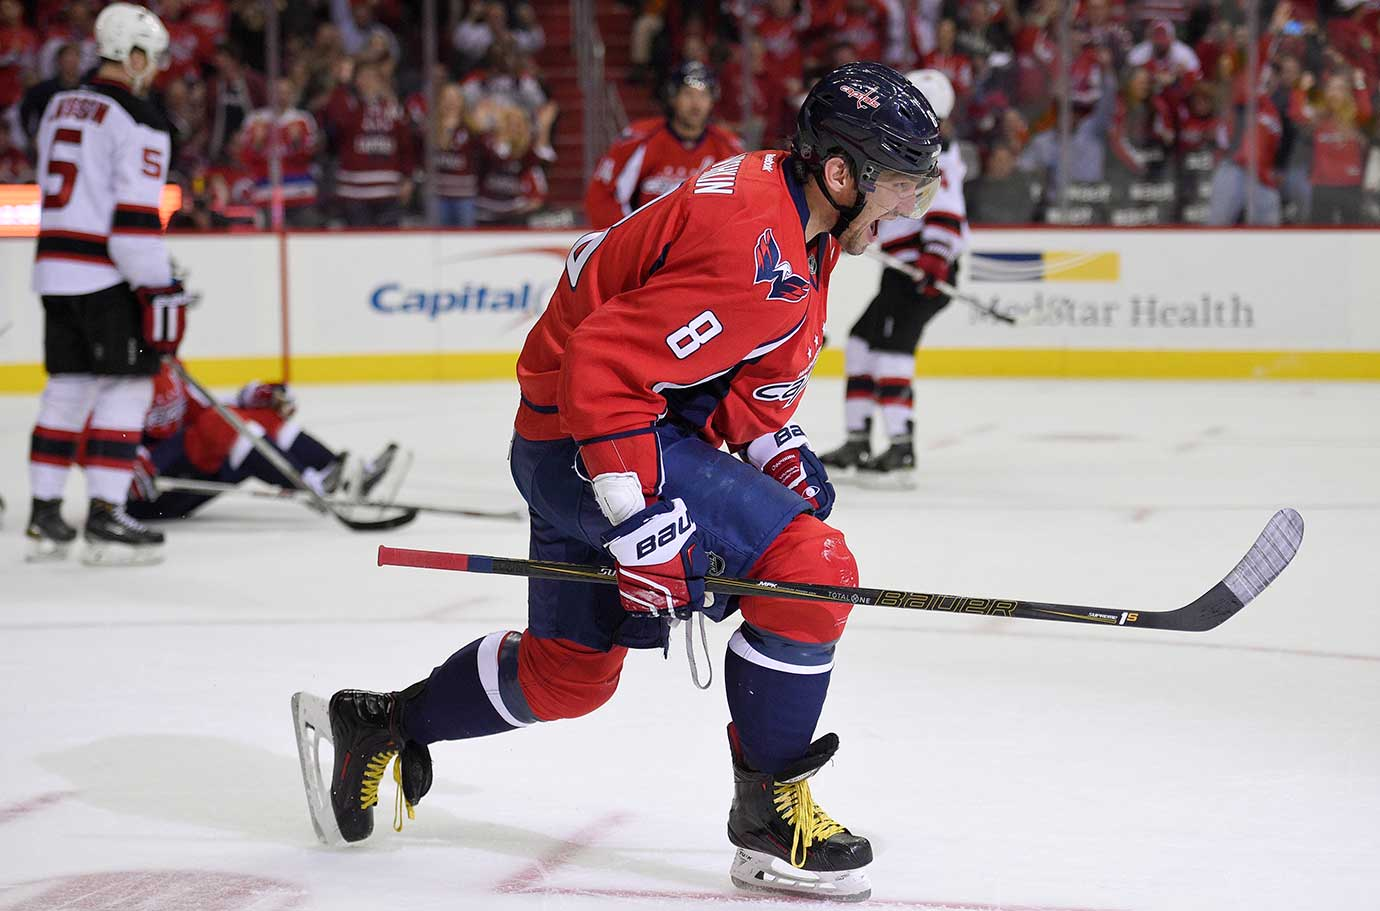 Washington Capitals left wing Alex Ovechkin celebrates his goal against the New Jersey Devils.